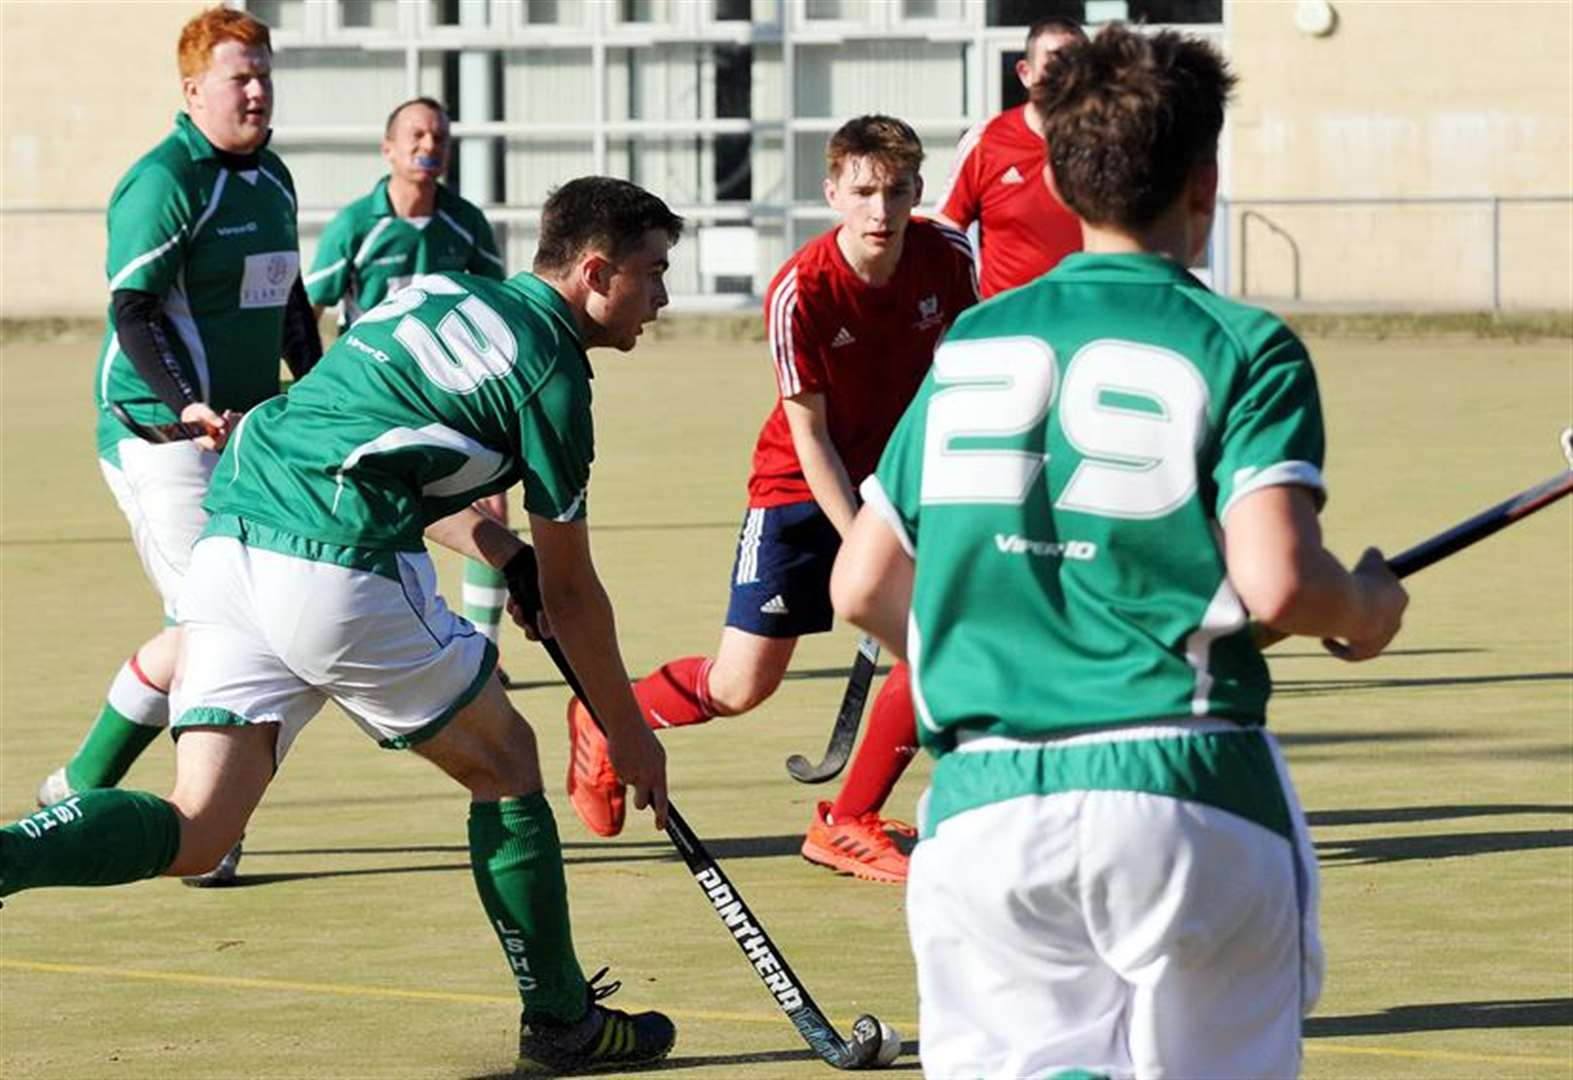 HOCKEY: Josh leads the way from start to finish